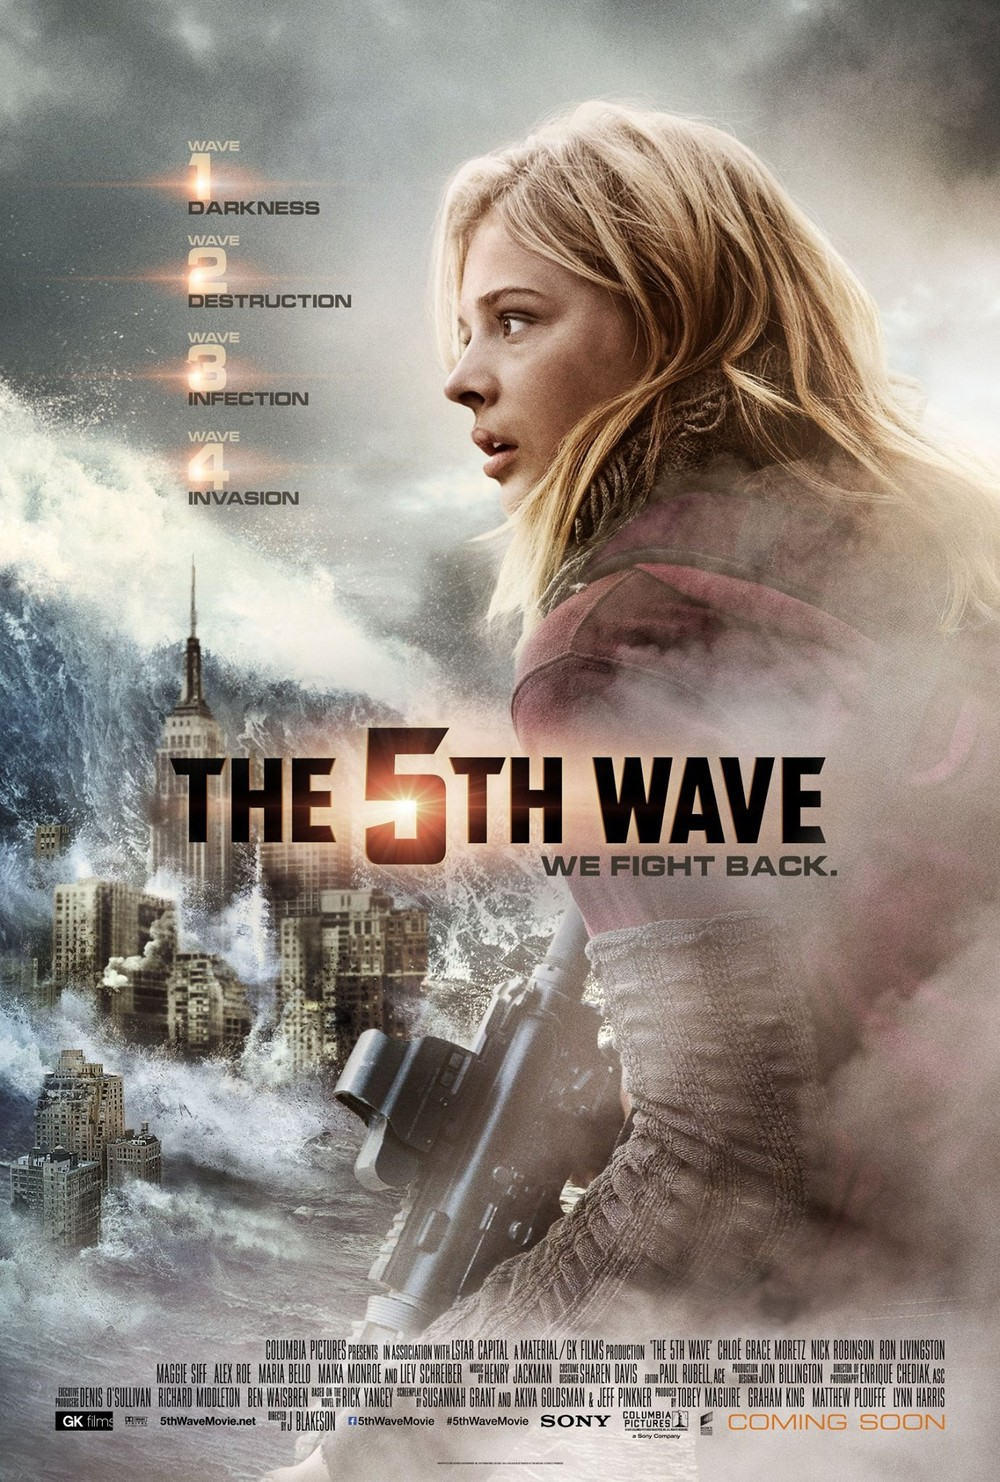 Book-to-movie review: the 5th wave | read. Breathe. Relax.